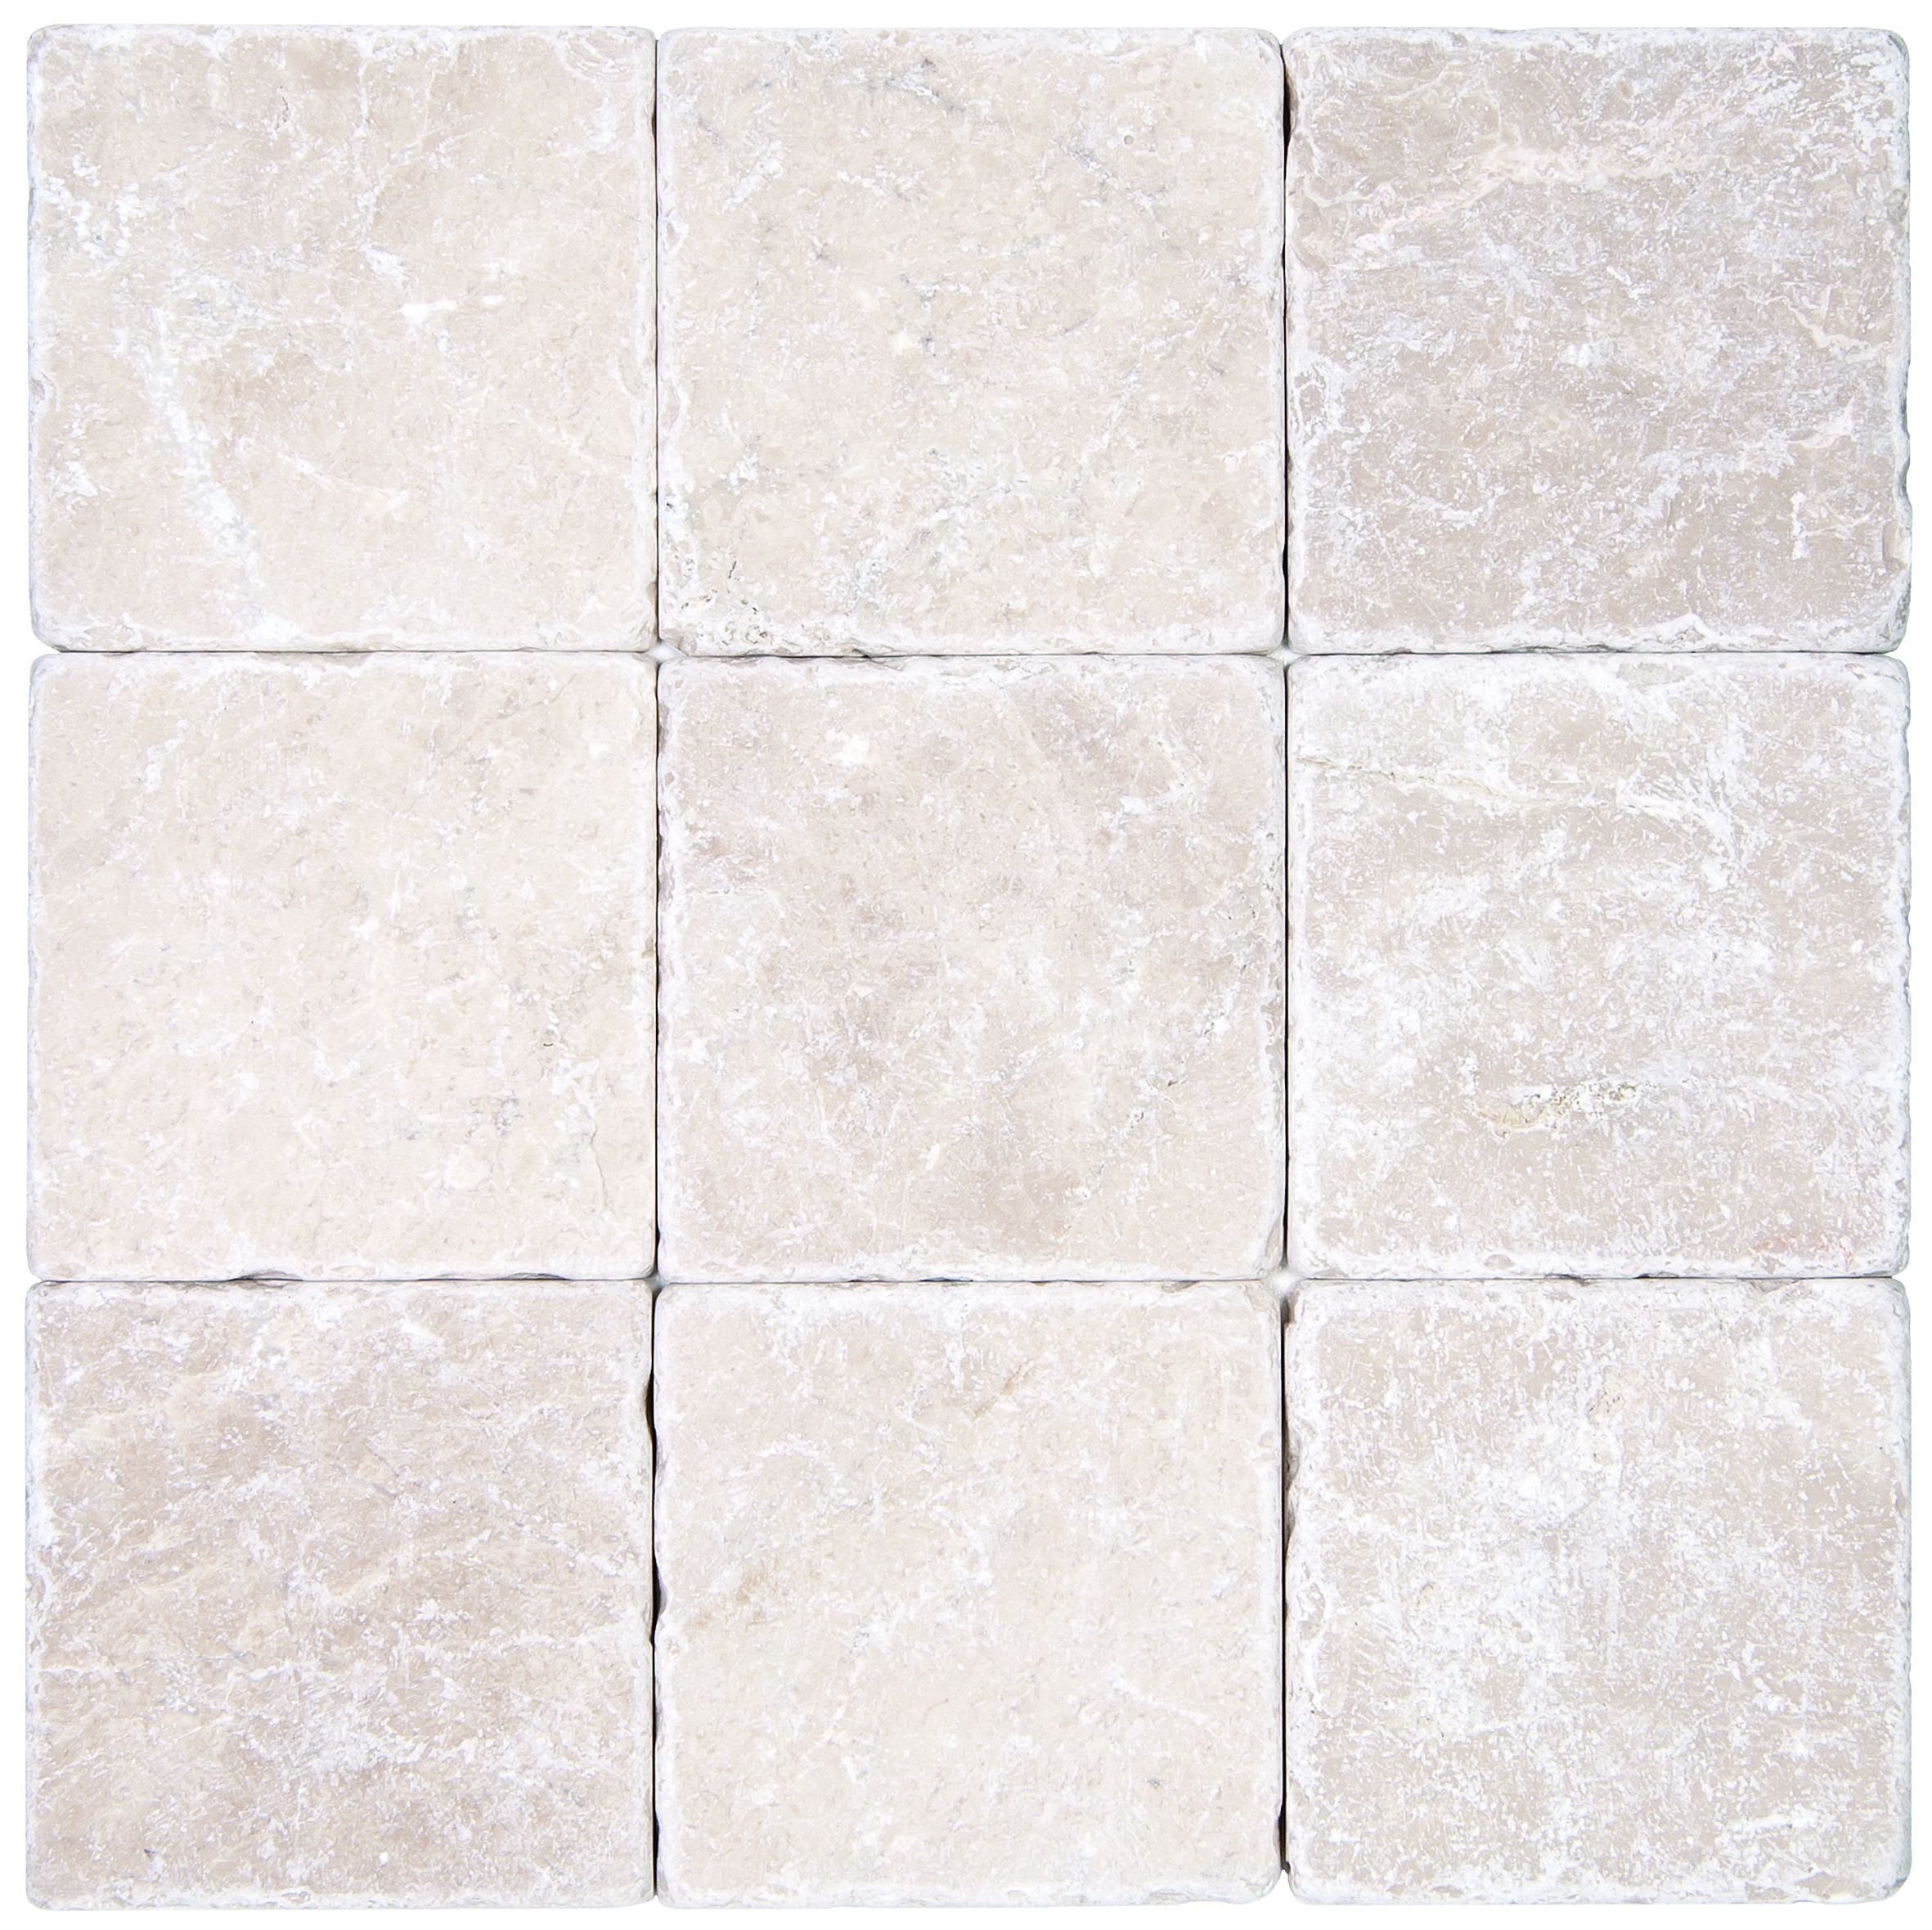 Botticino Beige Tumbled Marble Mosaic Tiles 4x4 Natural